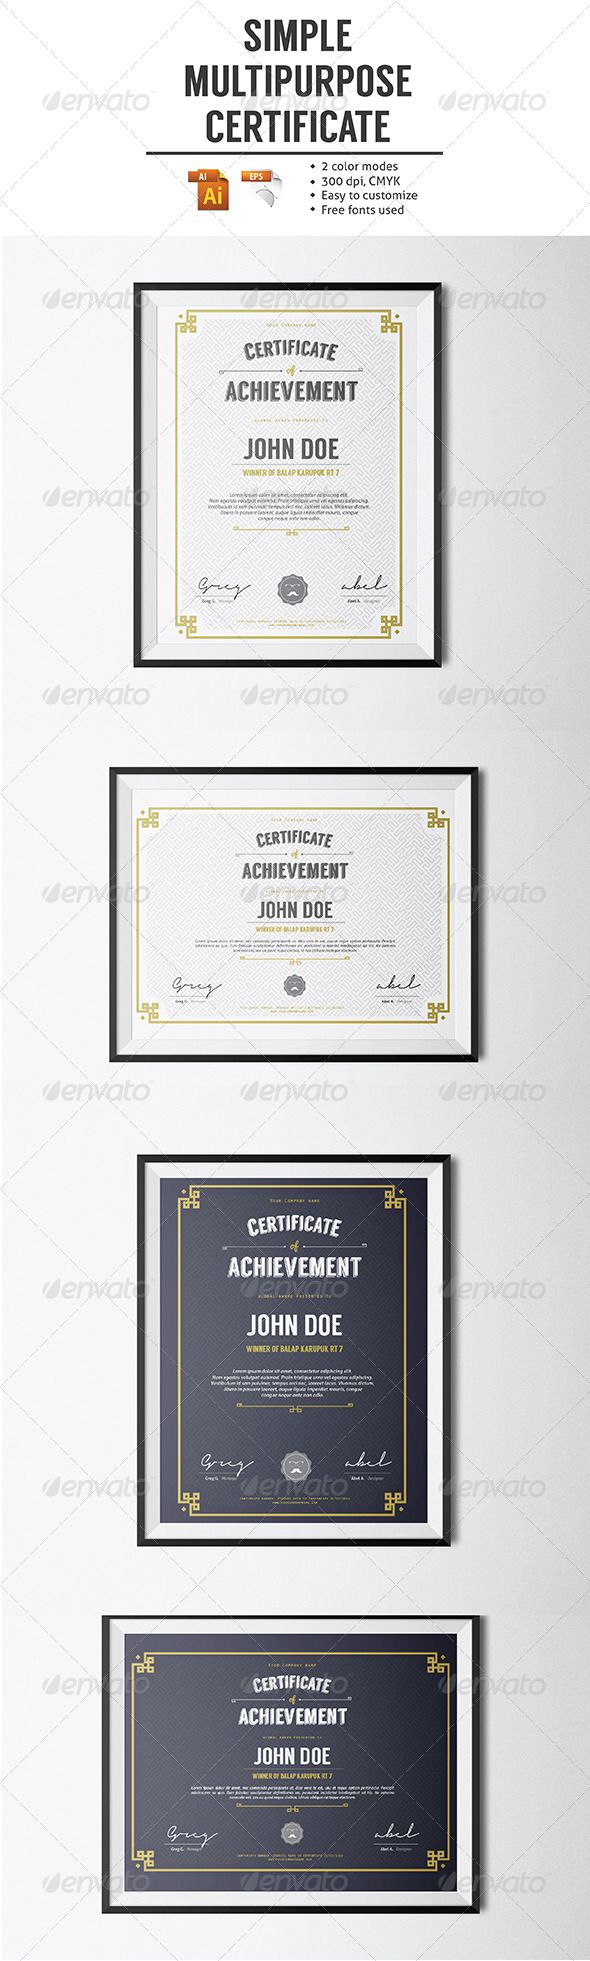 Simple Multipurpose Certificate  Certificate Certificate Design